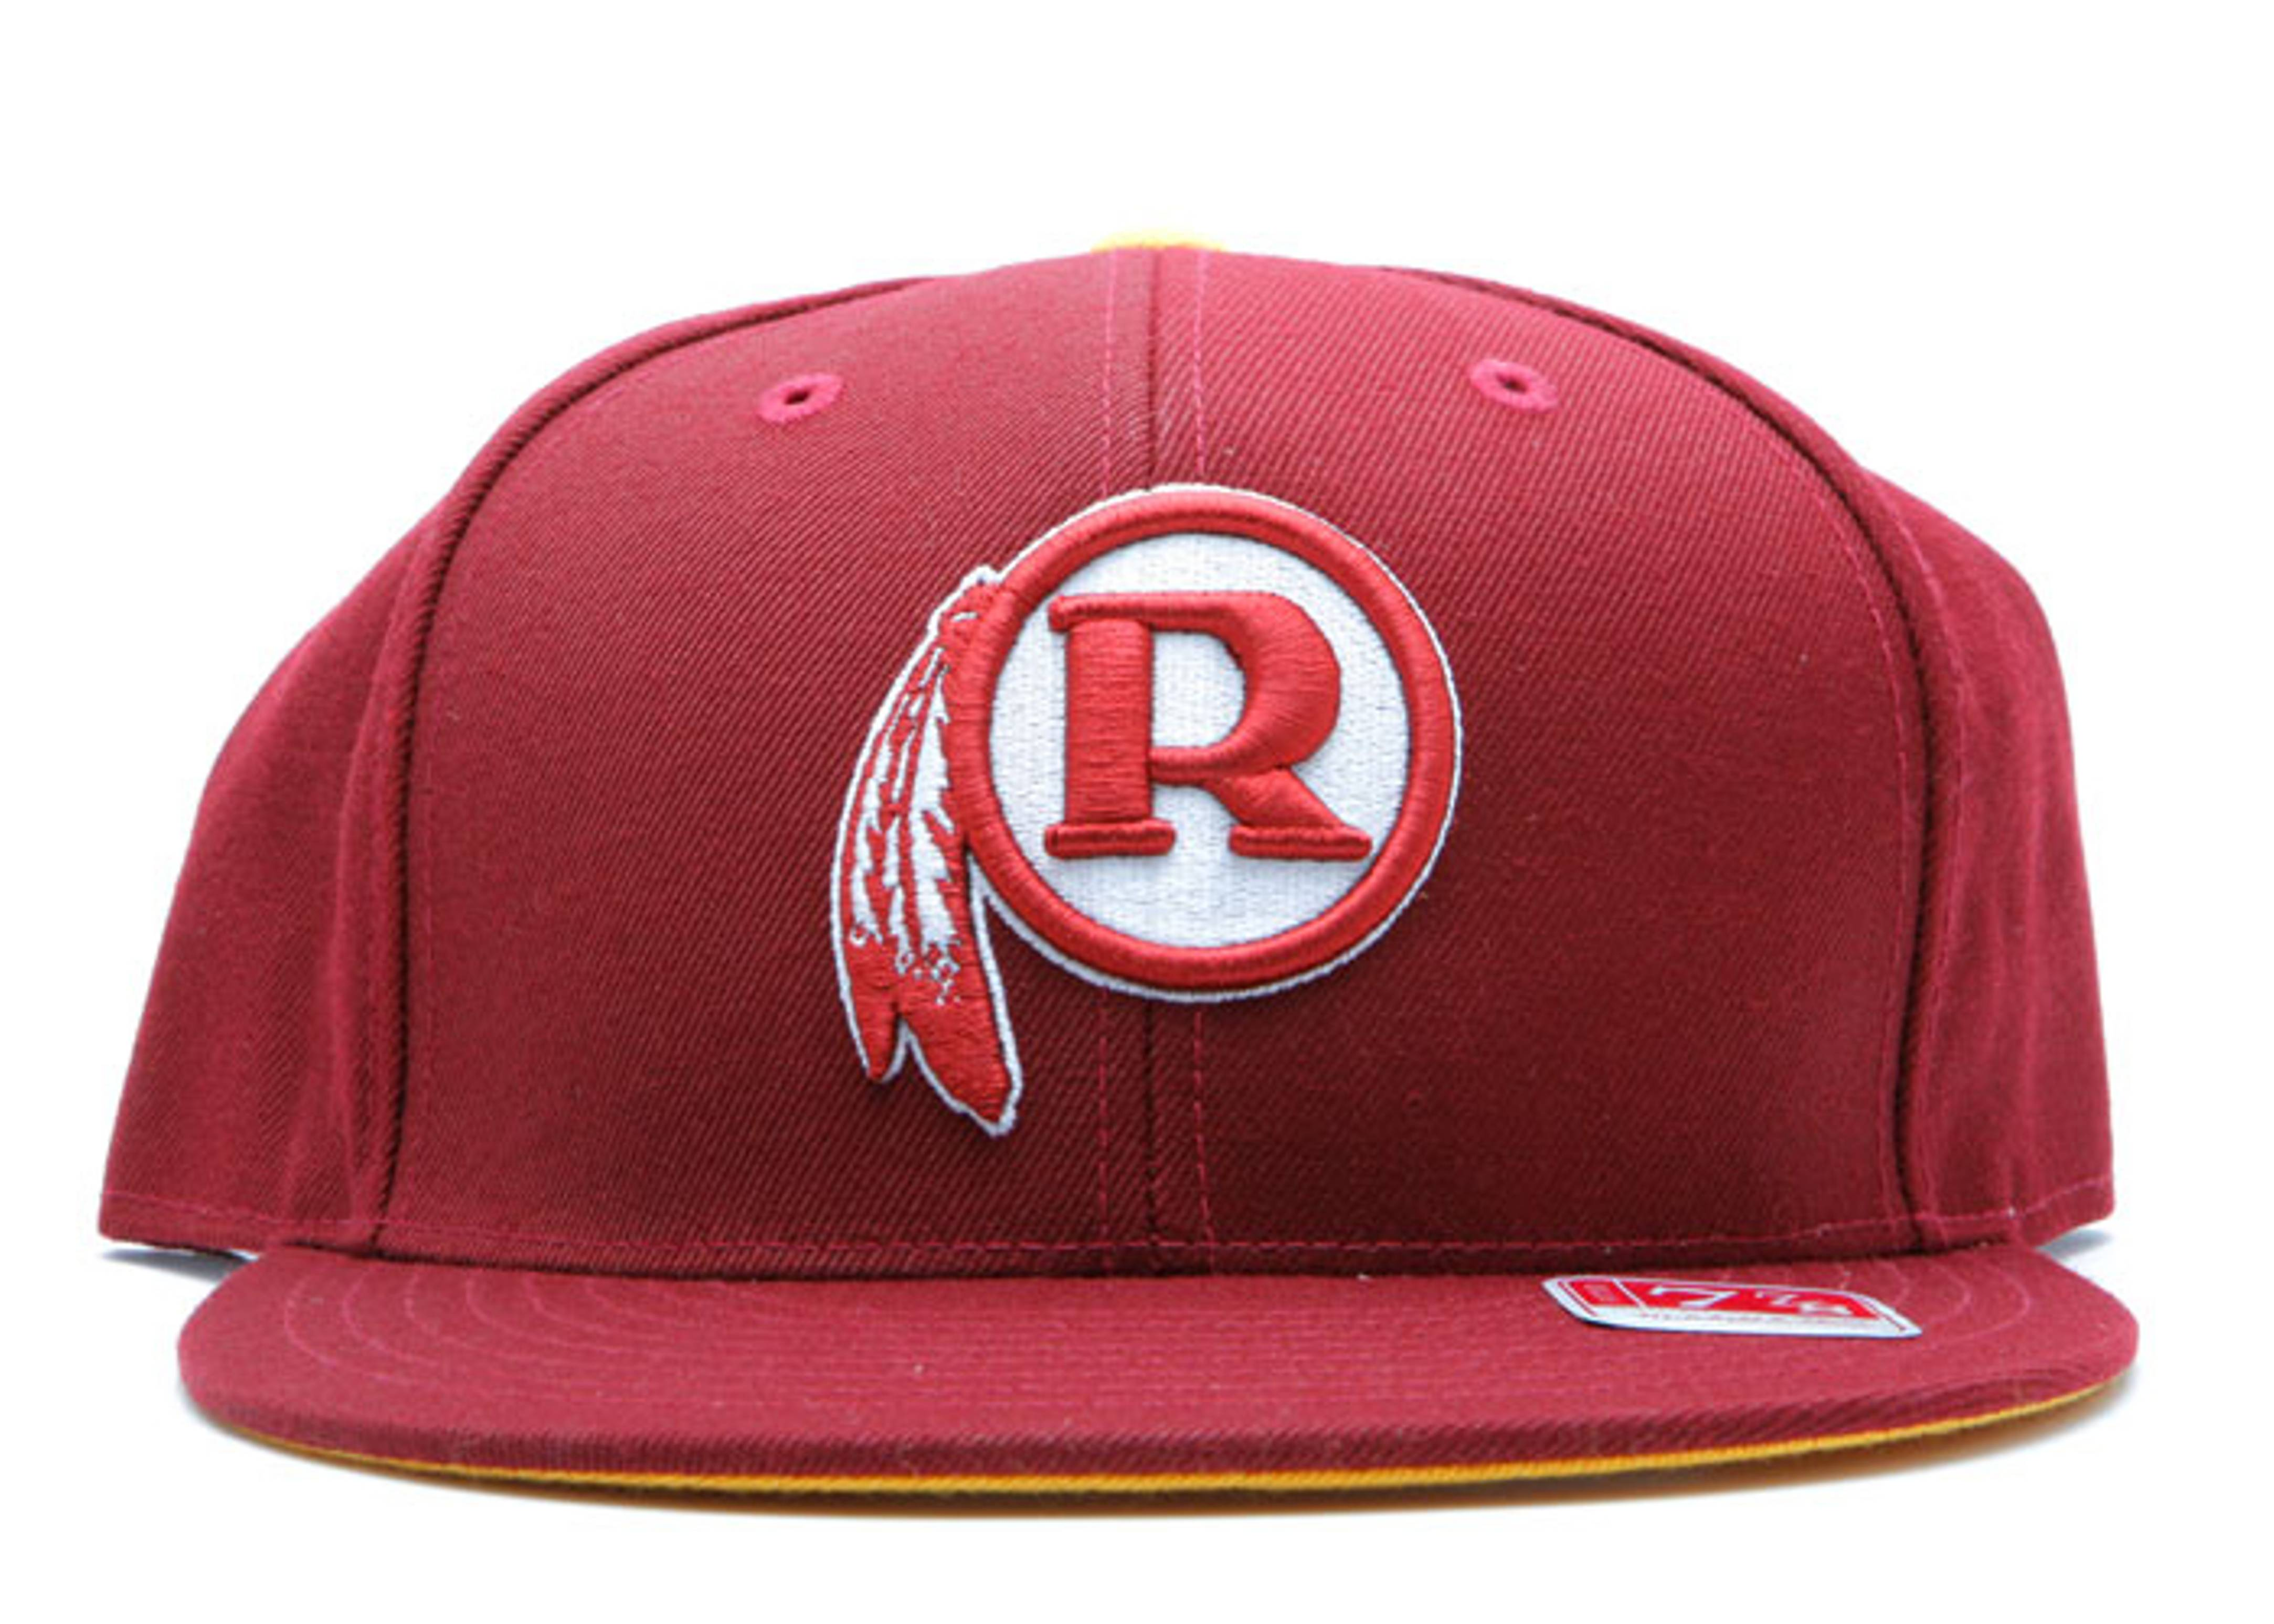 washington red skins fitted